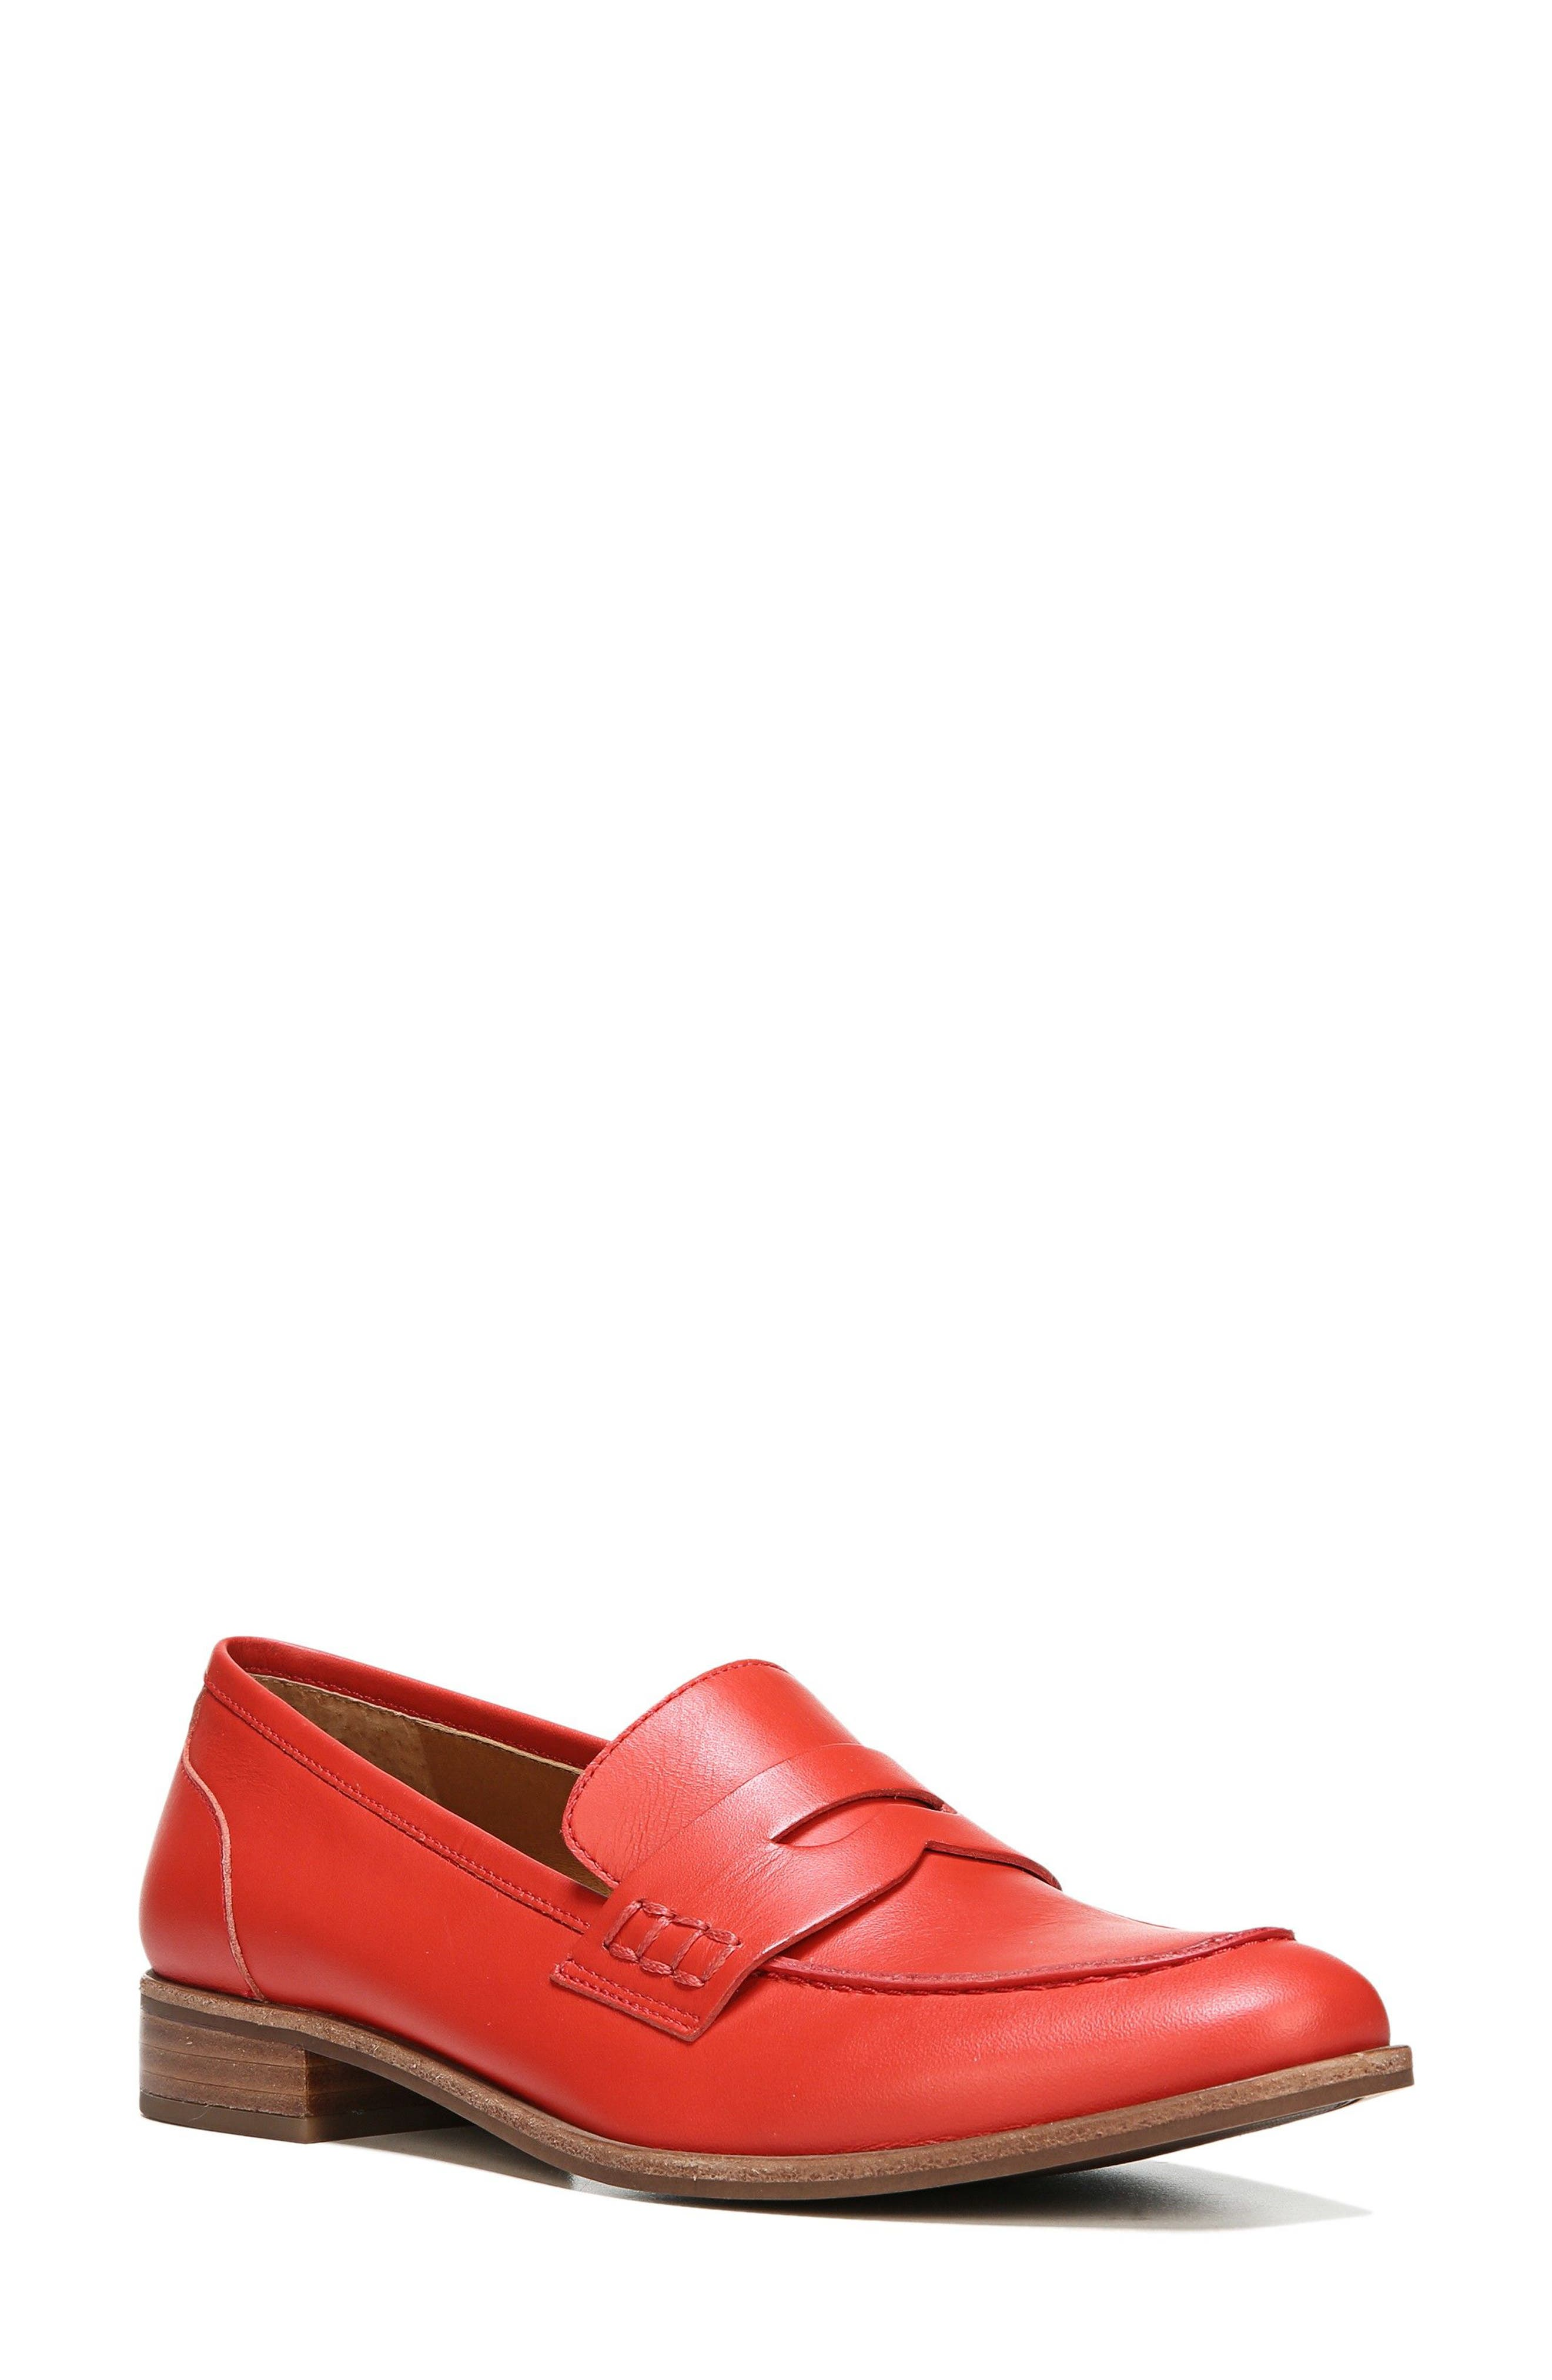 'Jolette' Penny Loafer,                             Main thumbnail 25, color,